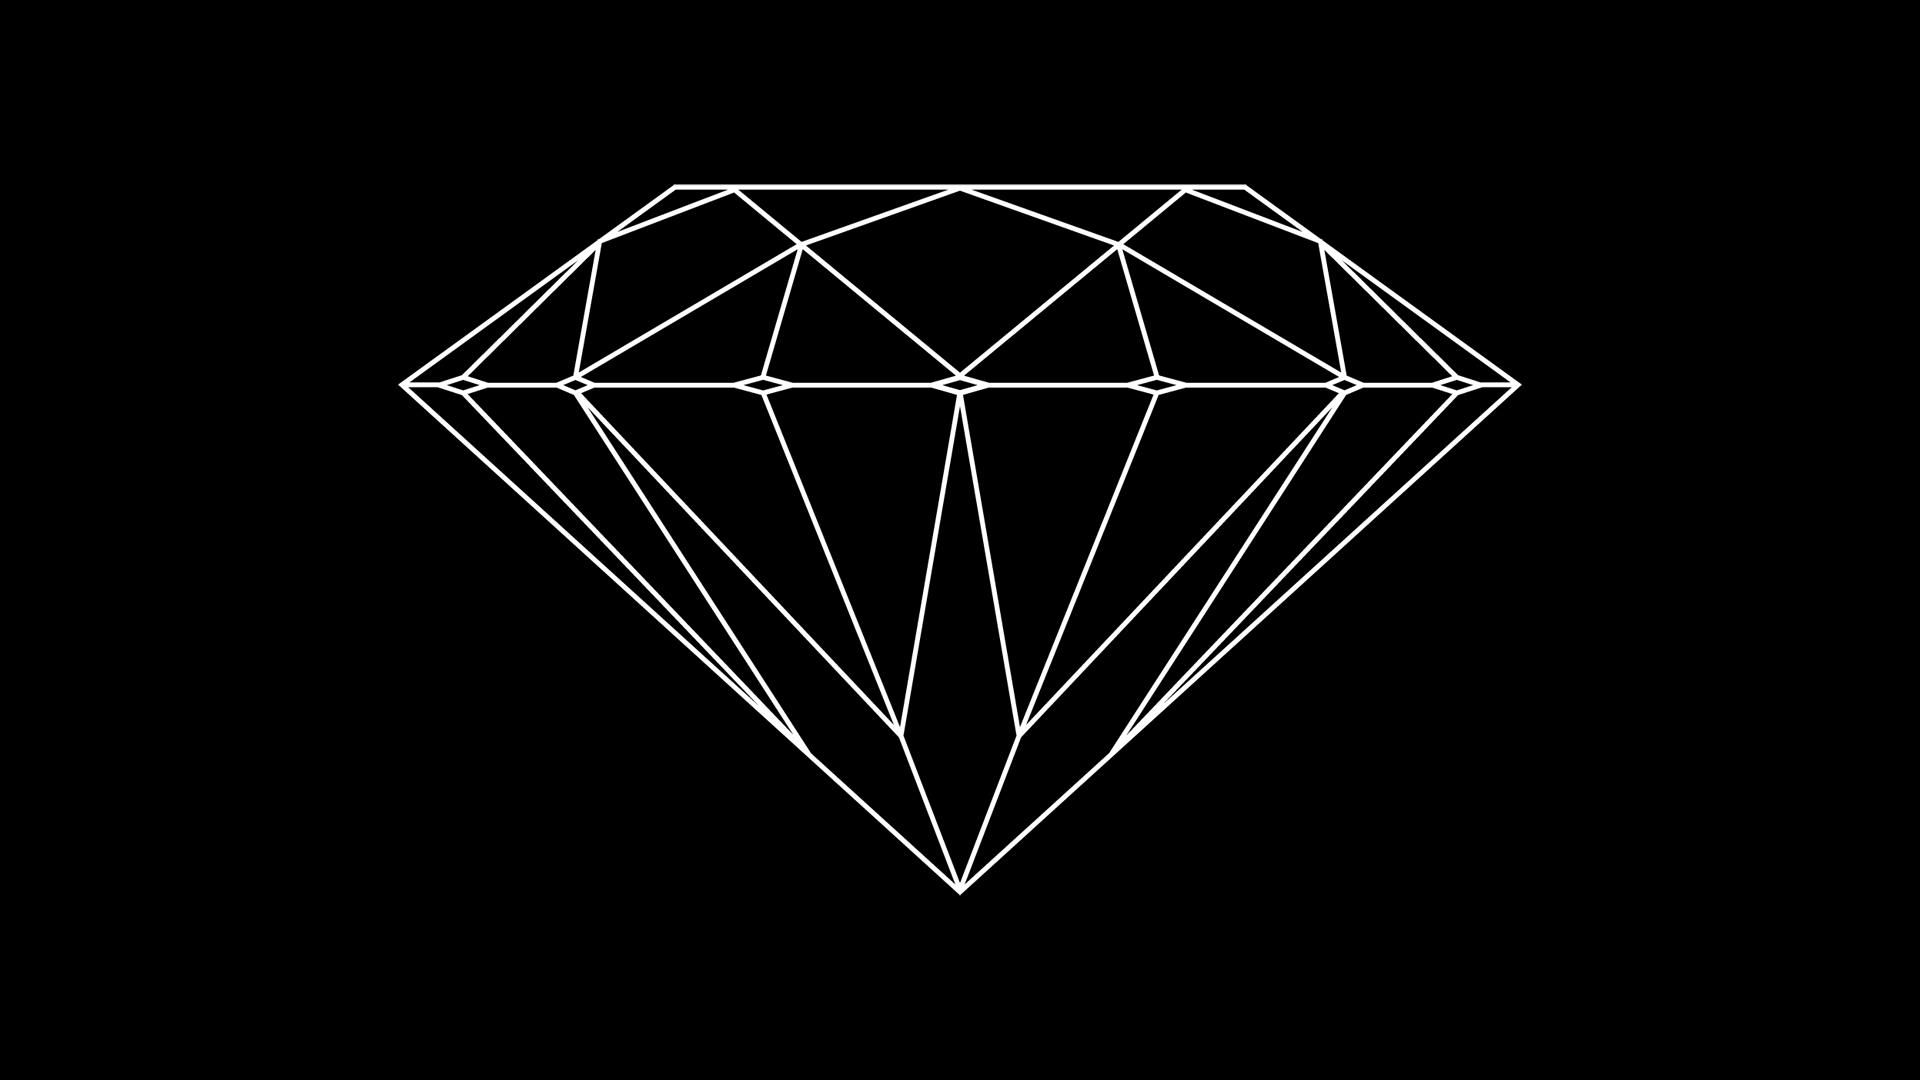 Wallpaper Desktop Supply Diamond Ubdme2boj